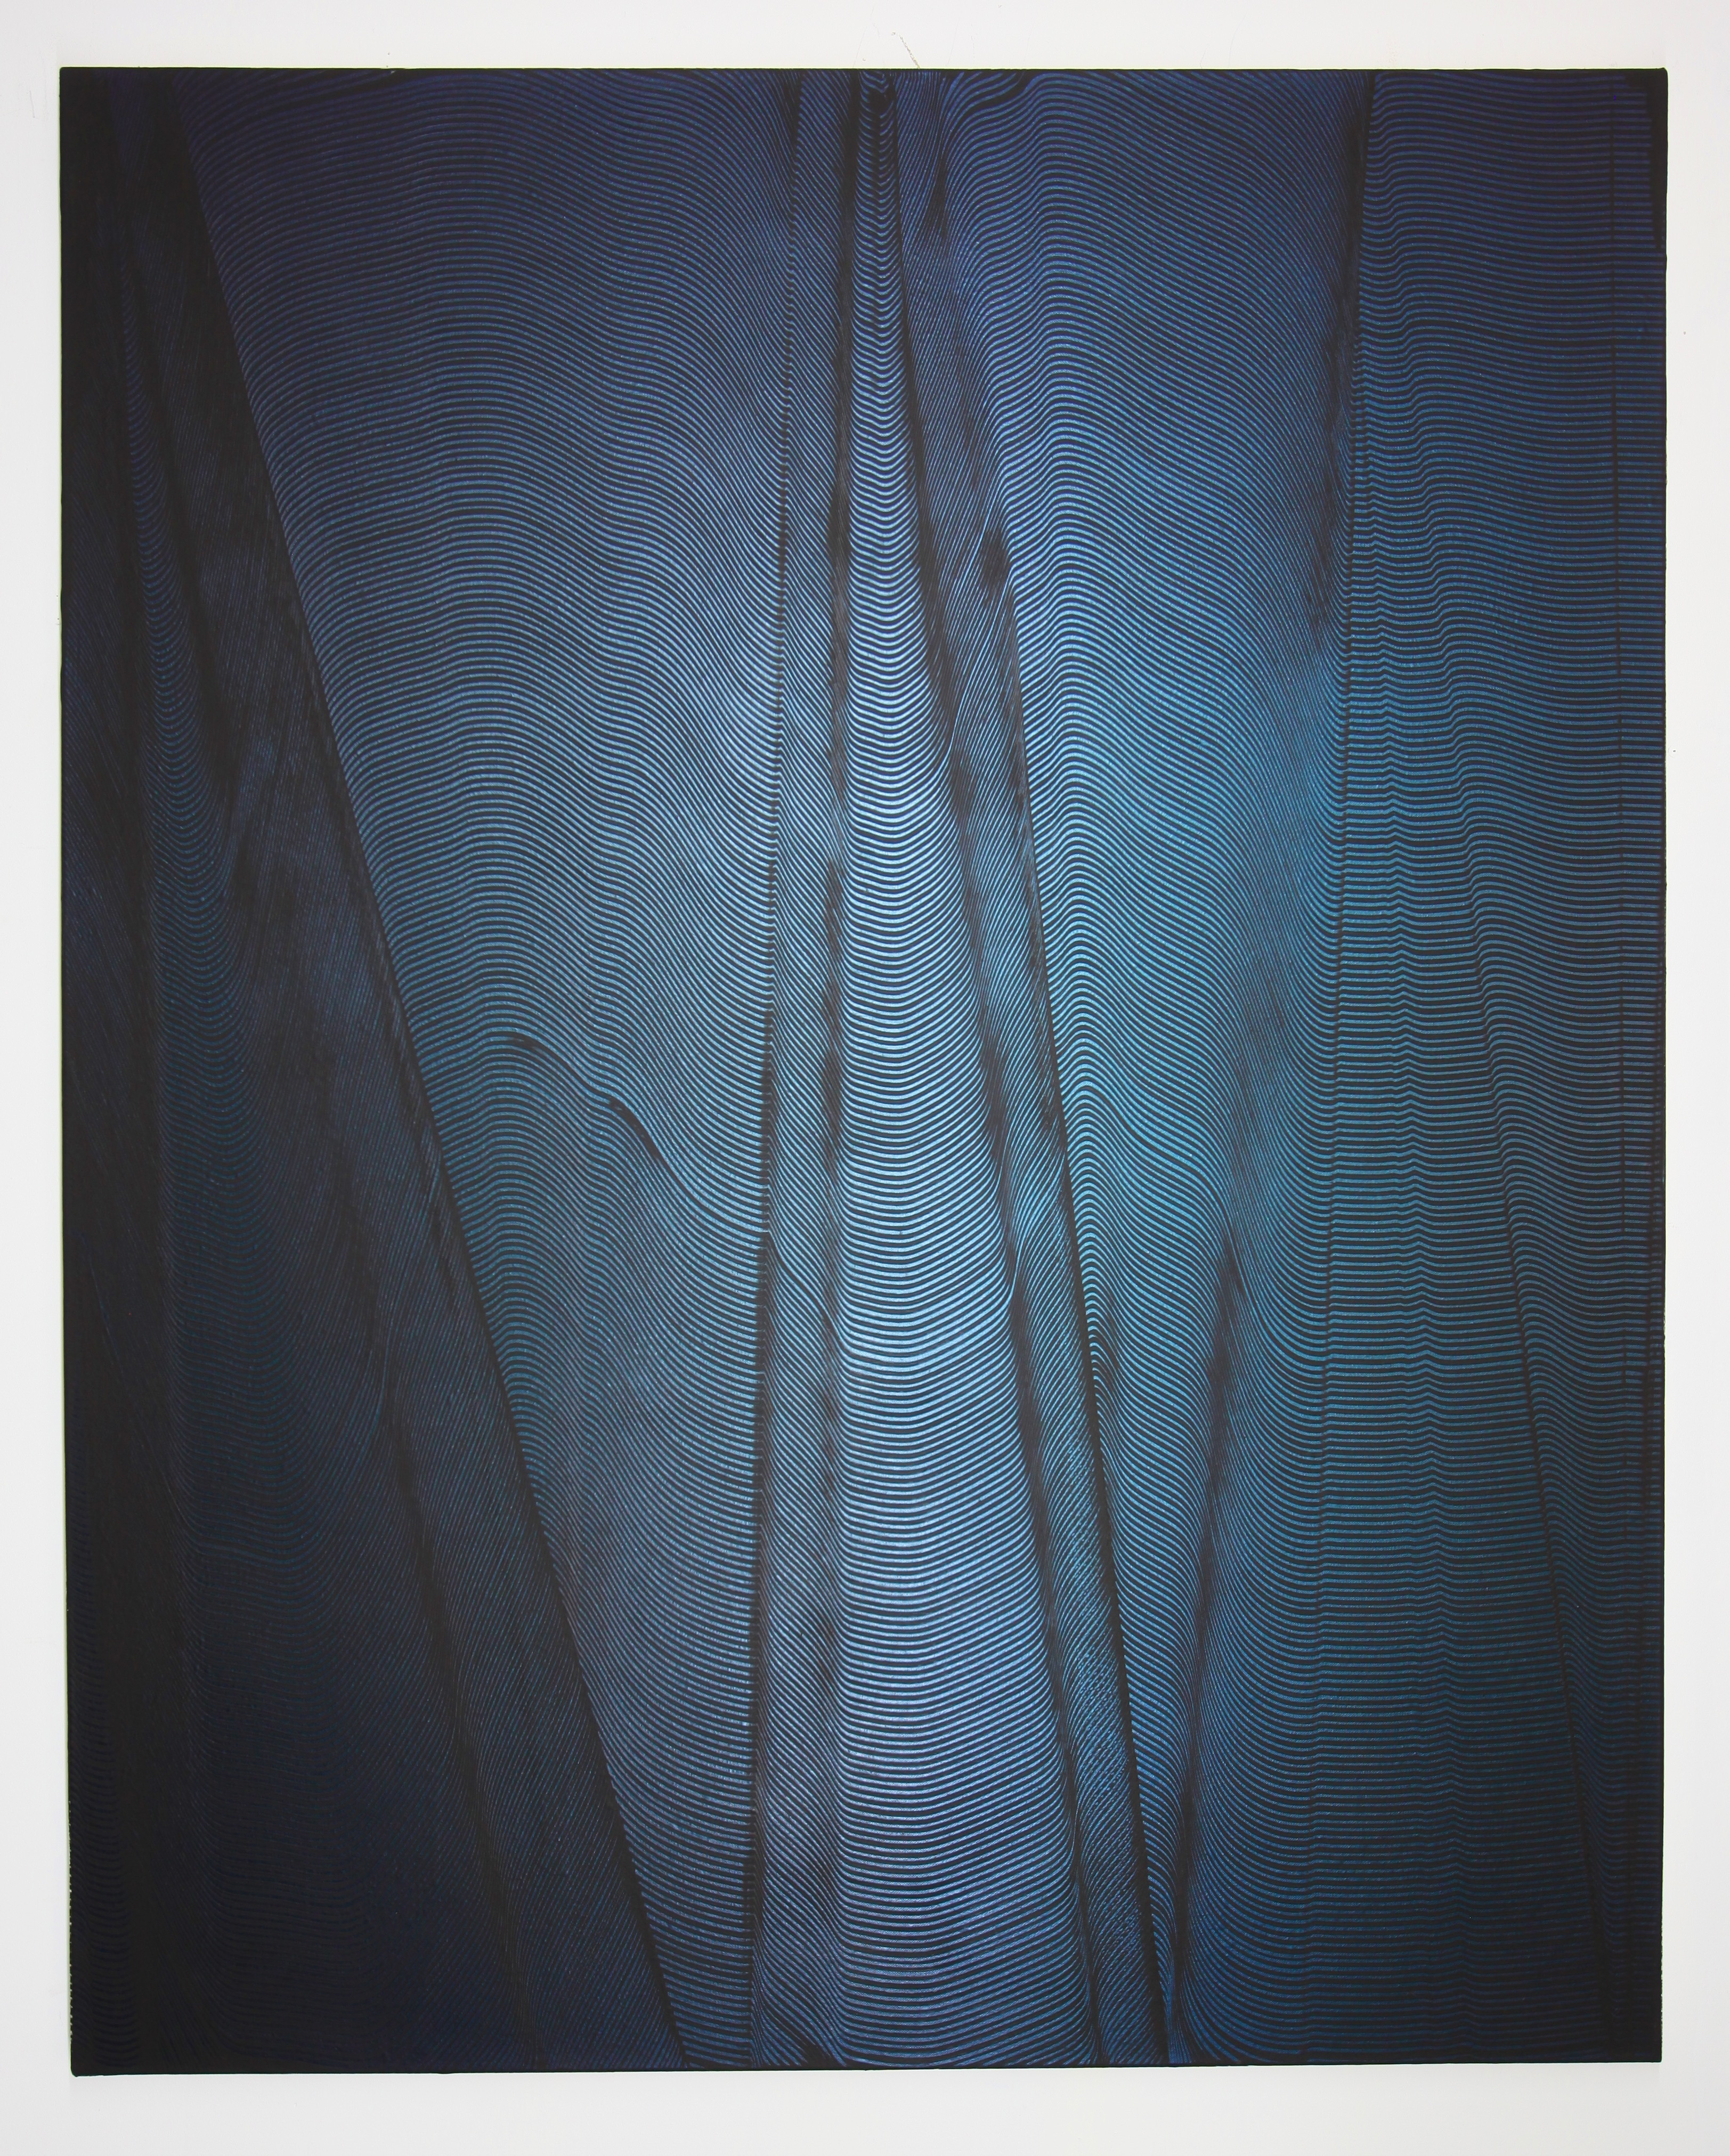 COLLINS_oil_and acrylic_on_auto wrap_on_canvas_60x48inches_BLUE_2021_DESOUSA_GALLERY